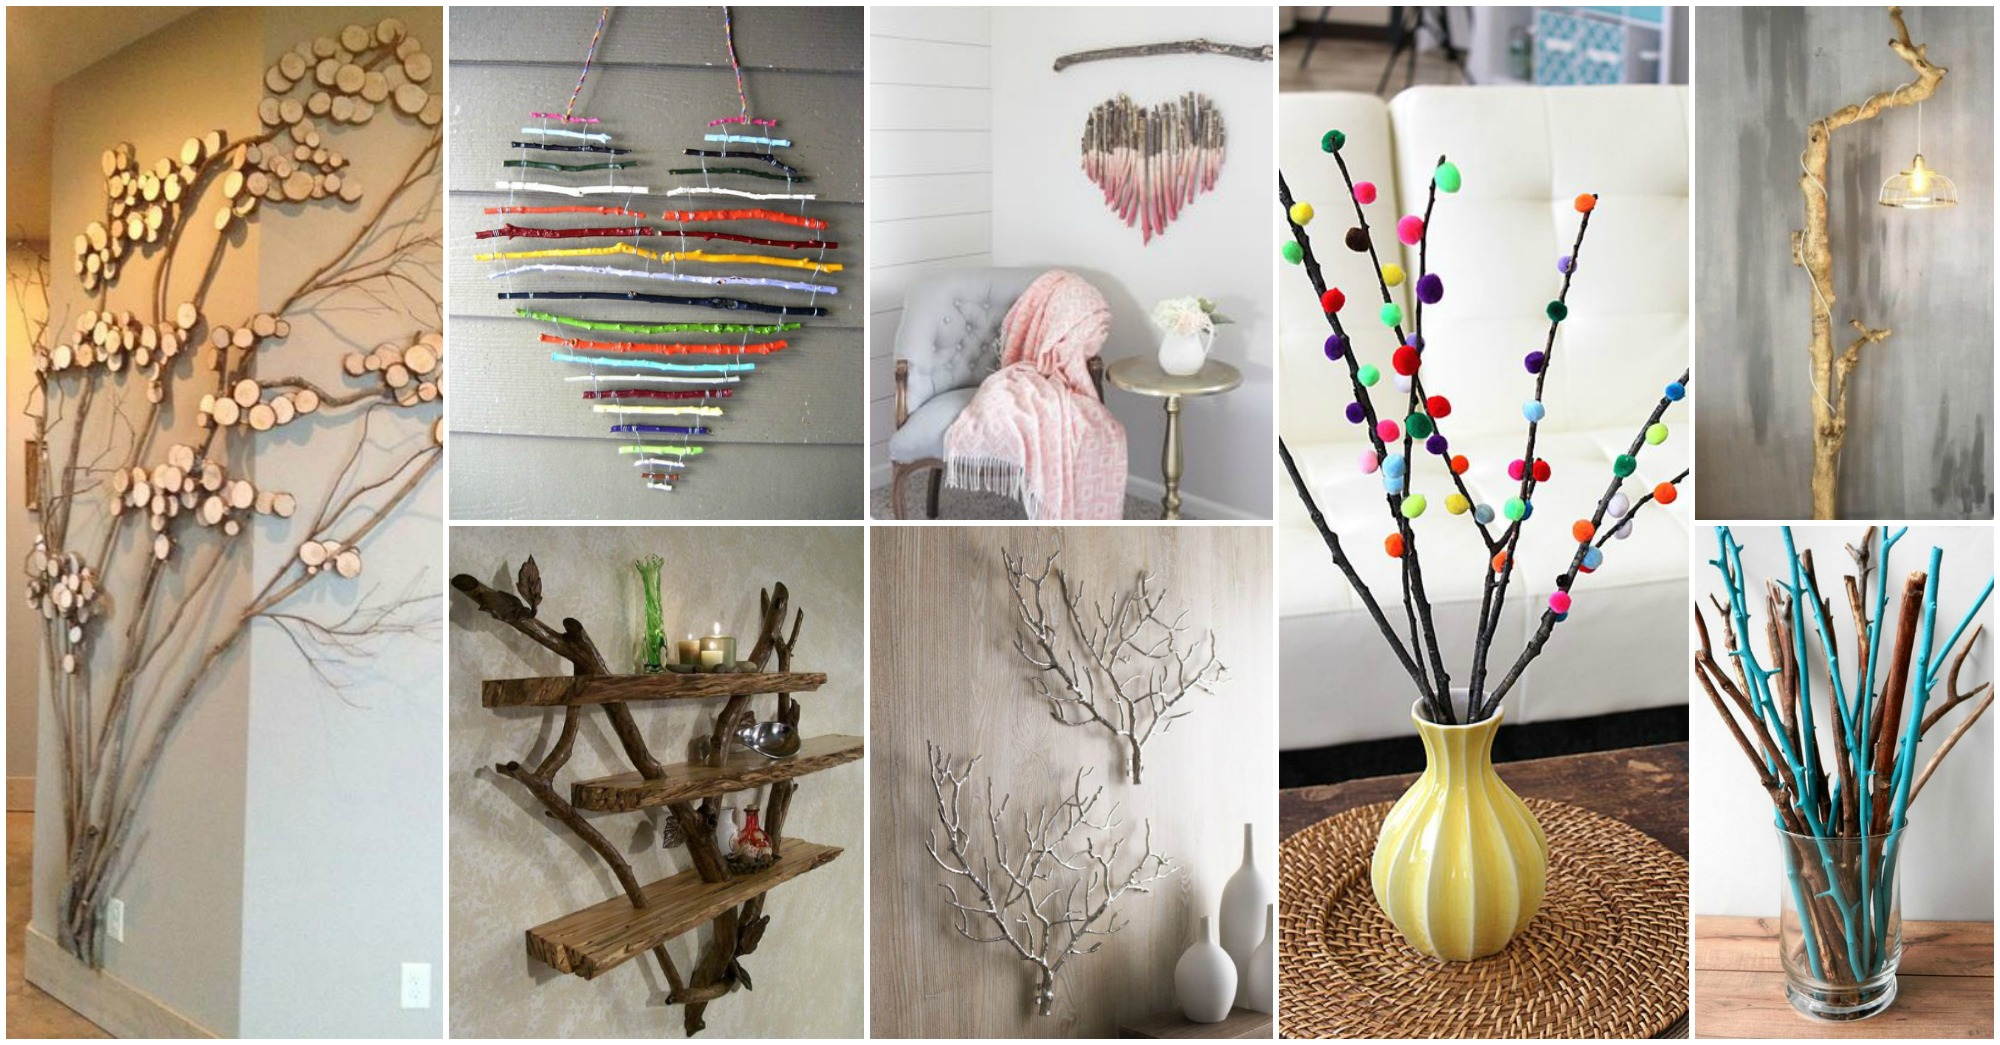 Diy tree branches home decor ideas for Homemade tree decorations